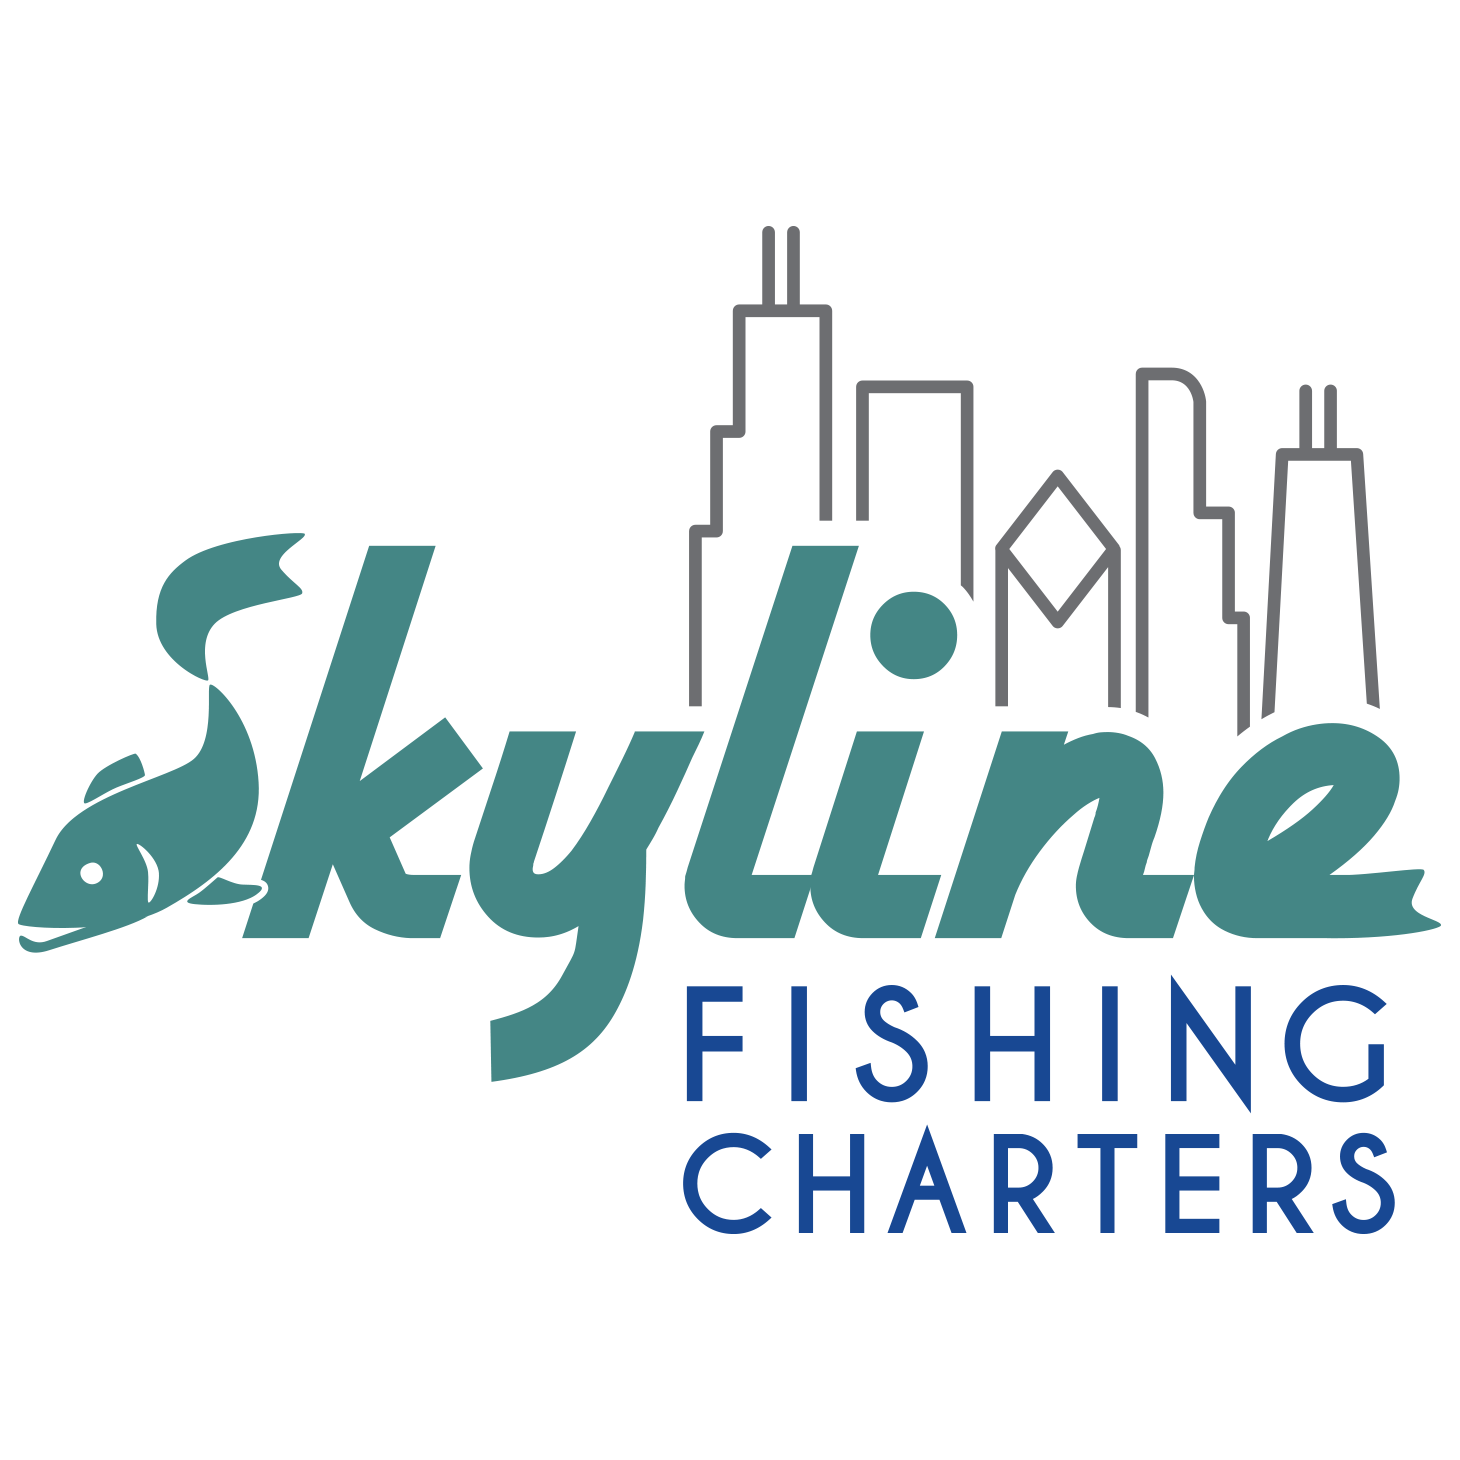 Skyline fishing charters chicago il business profile for Chicago fishing charters